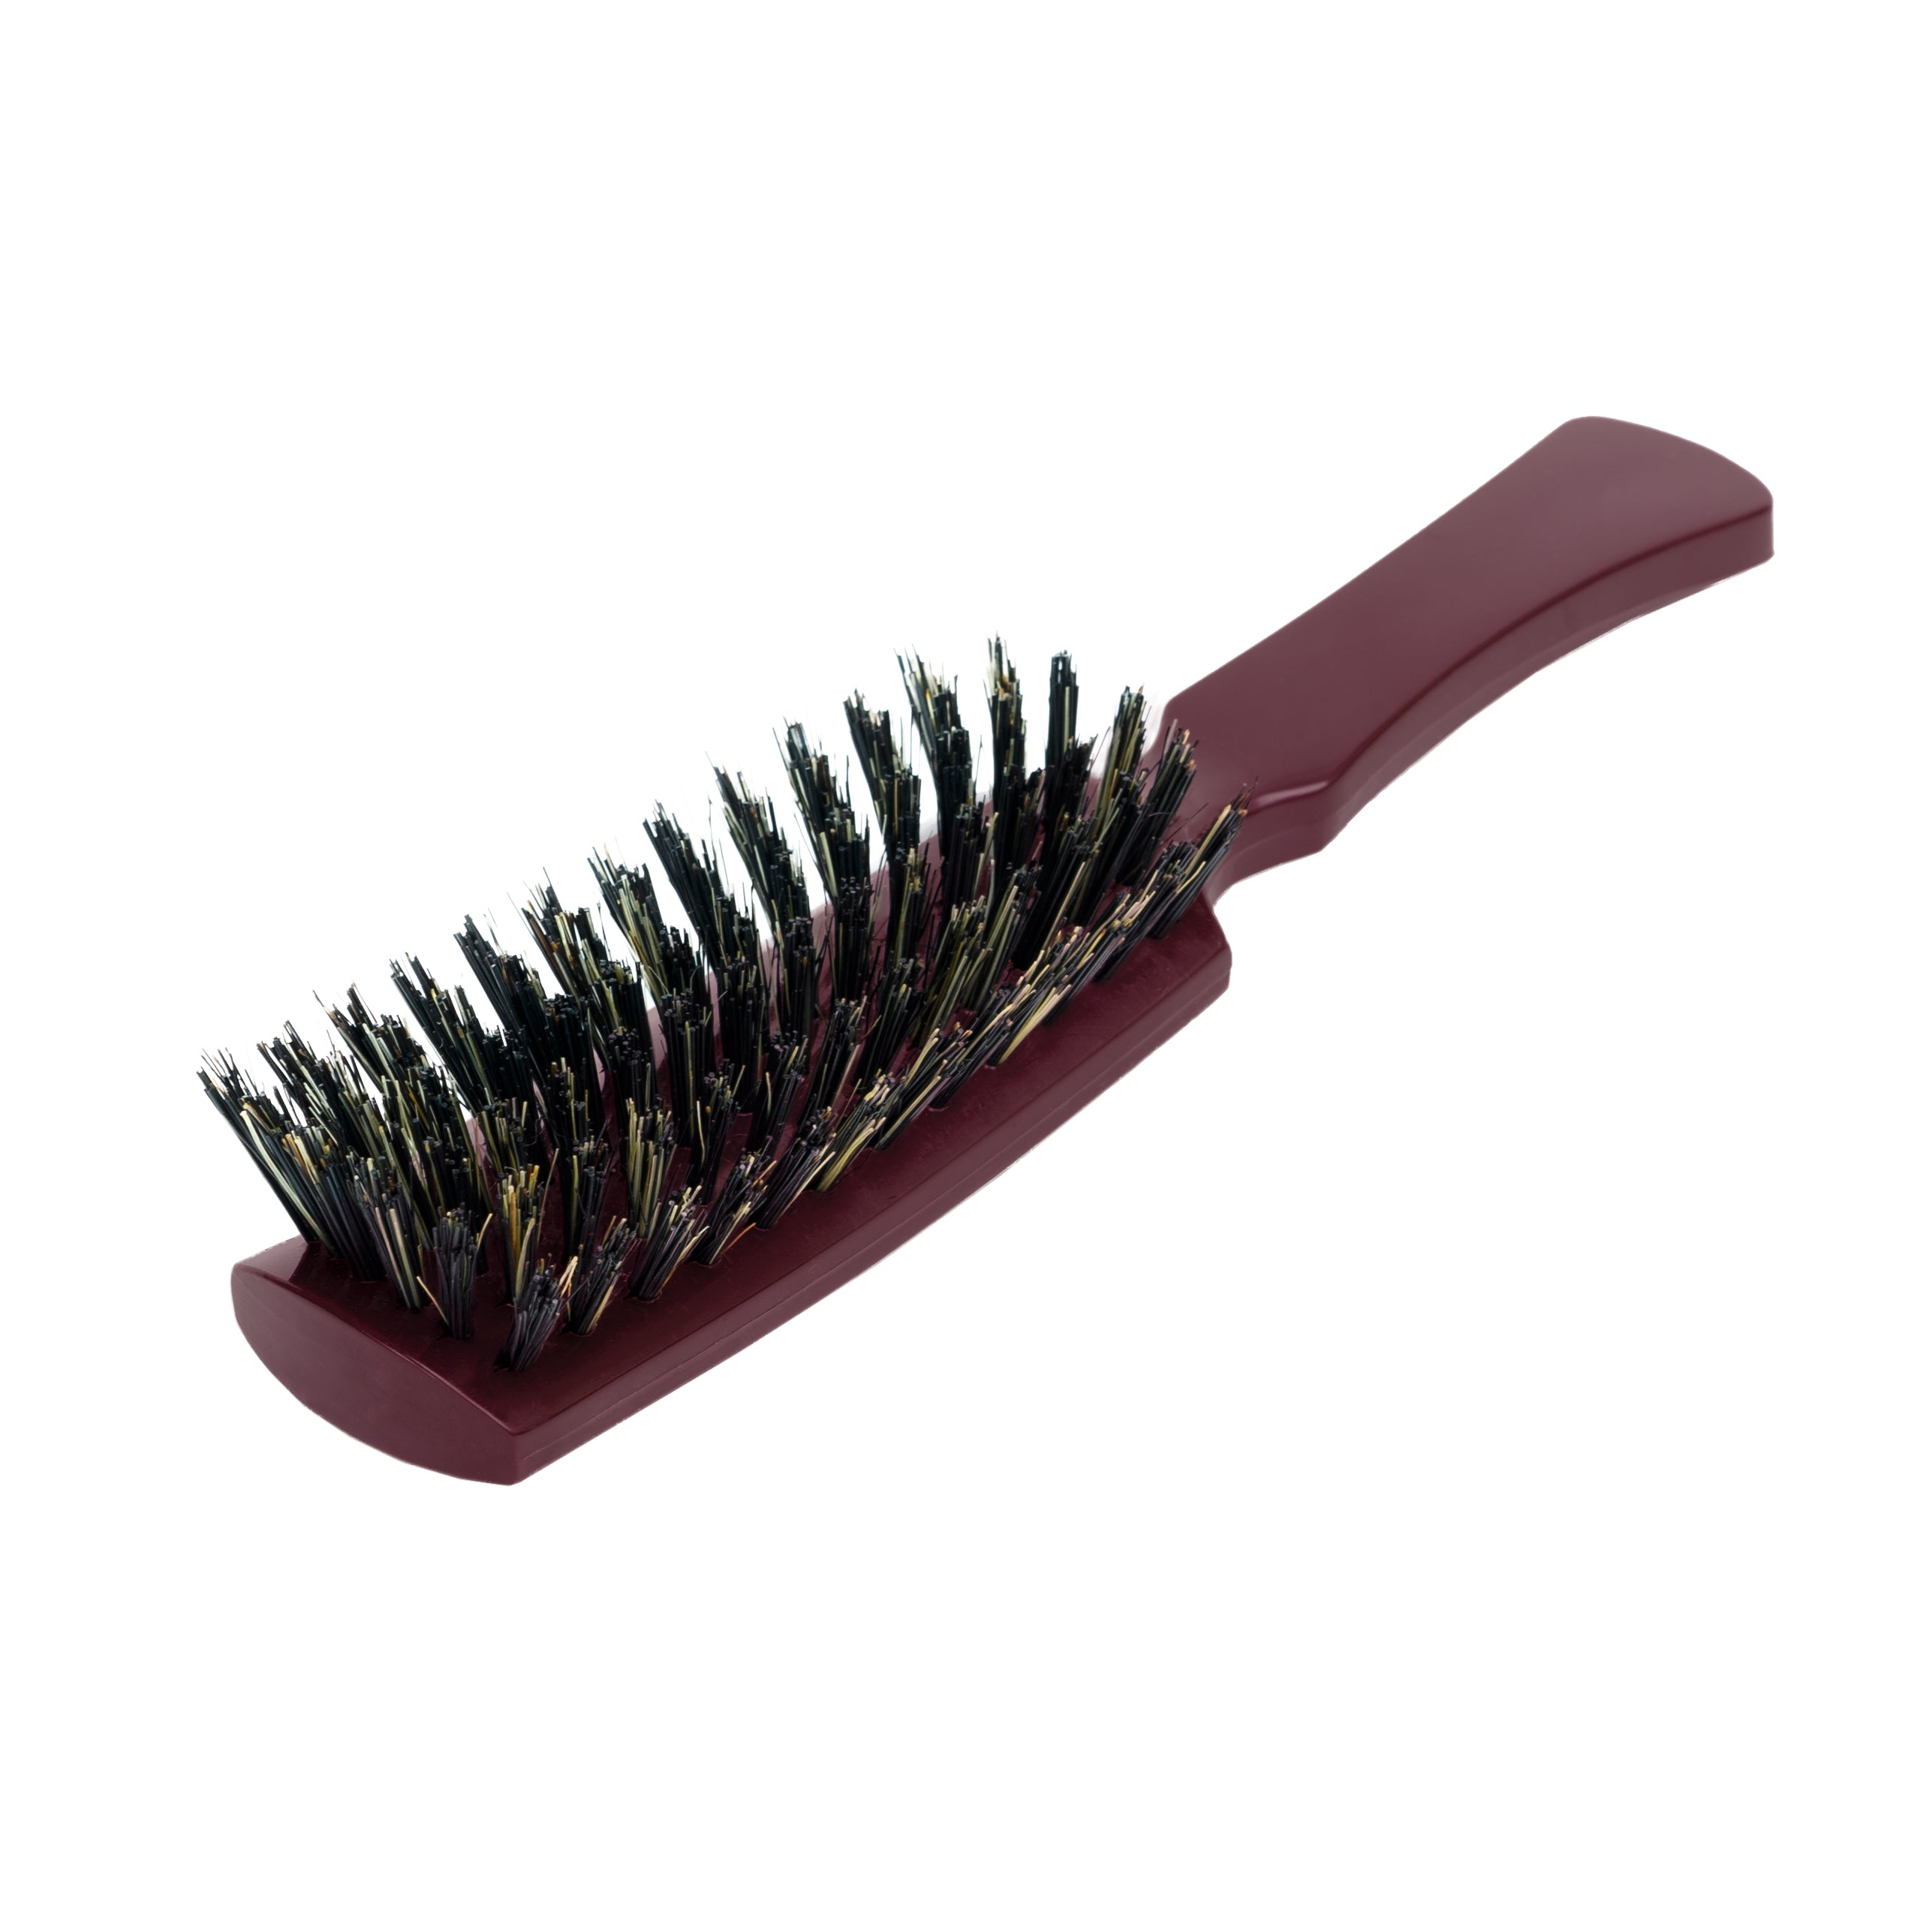 Nylon and Boar Bristle Professional Styling Hairbrush for all hair types - Mulberry Color